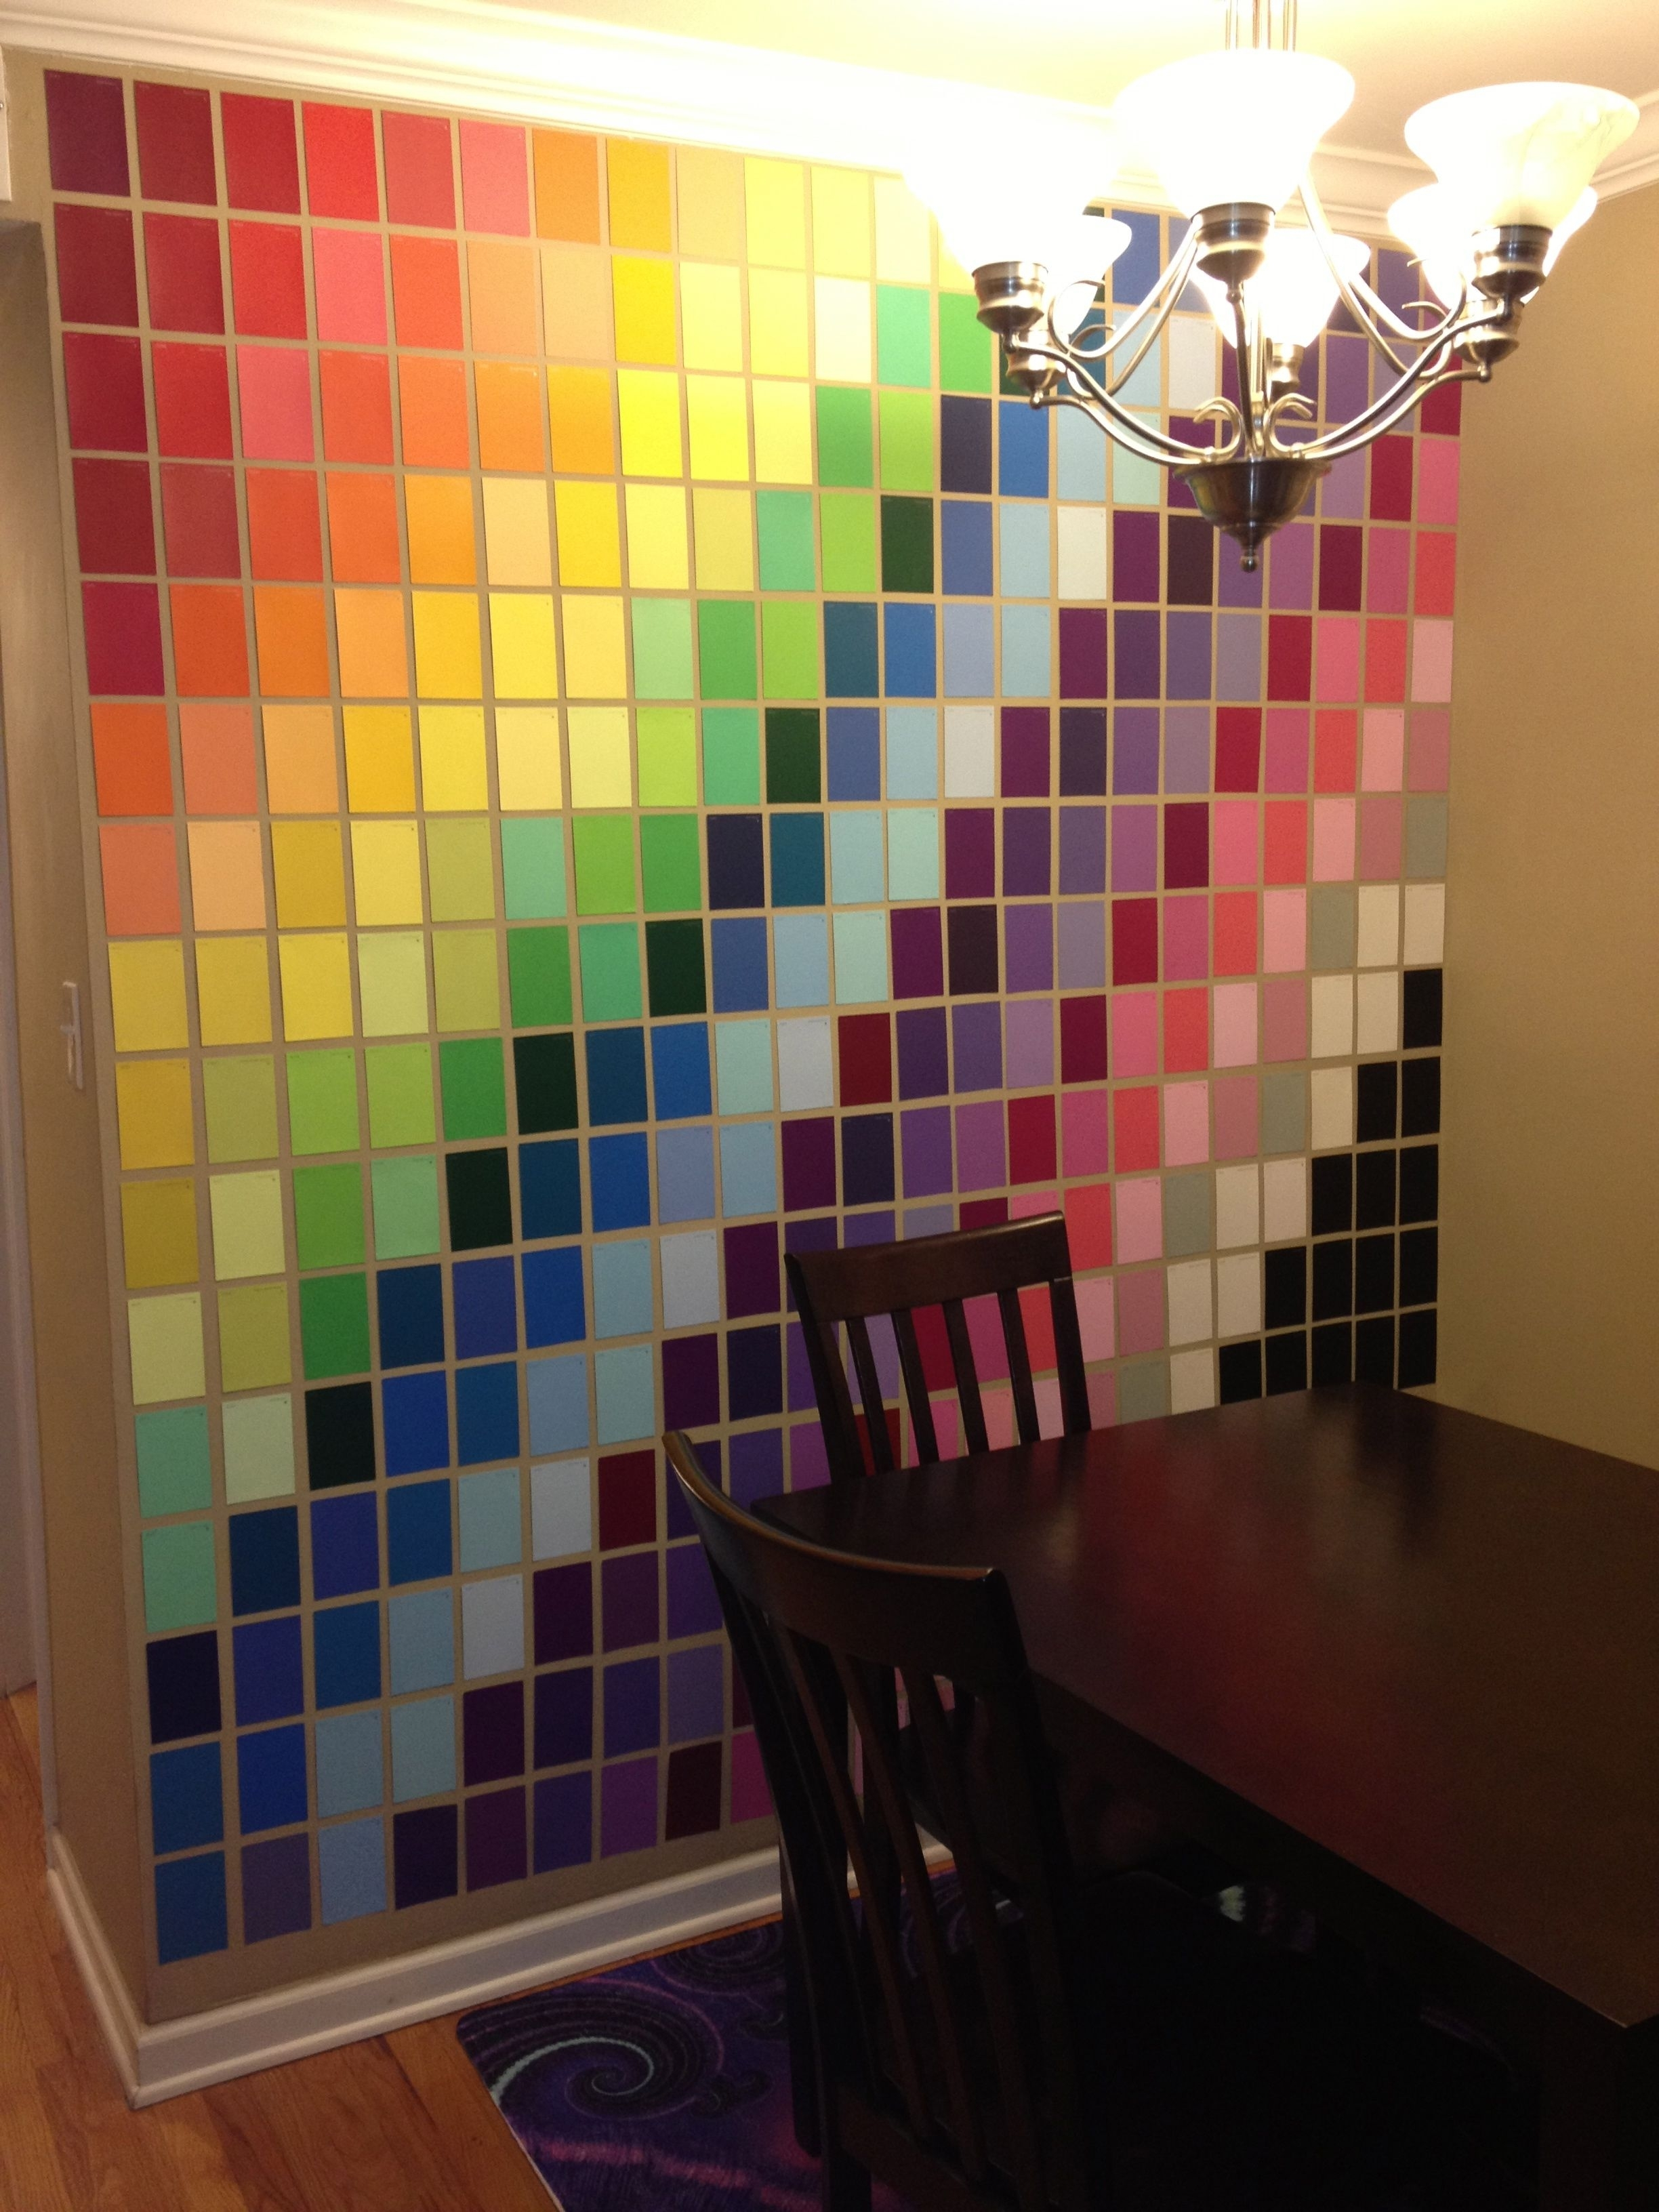 Wall Art Made With Paint Samples From Home Depot (View 11 of 15)